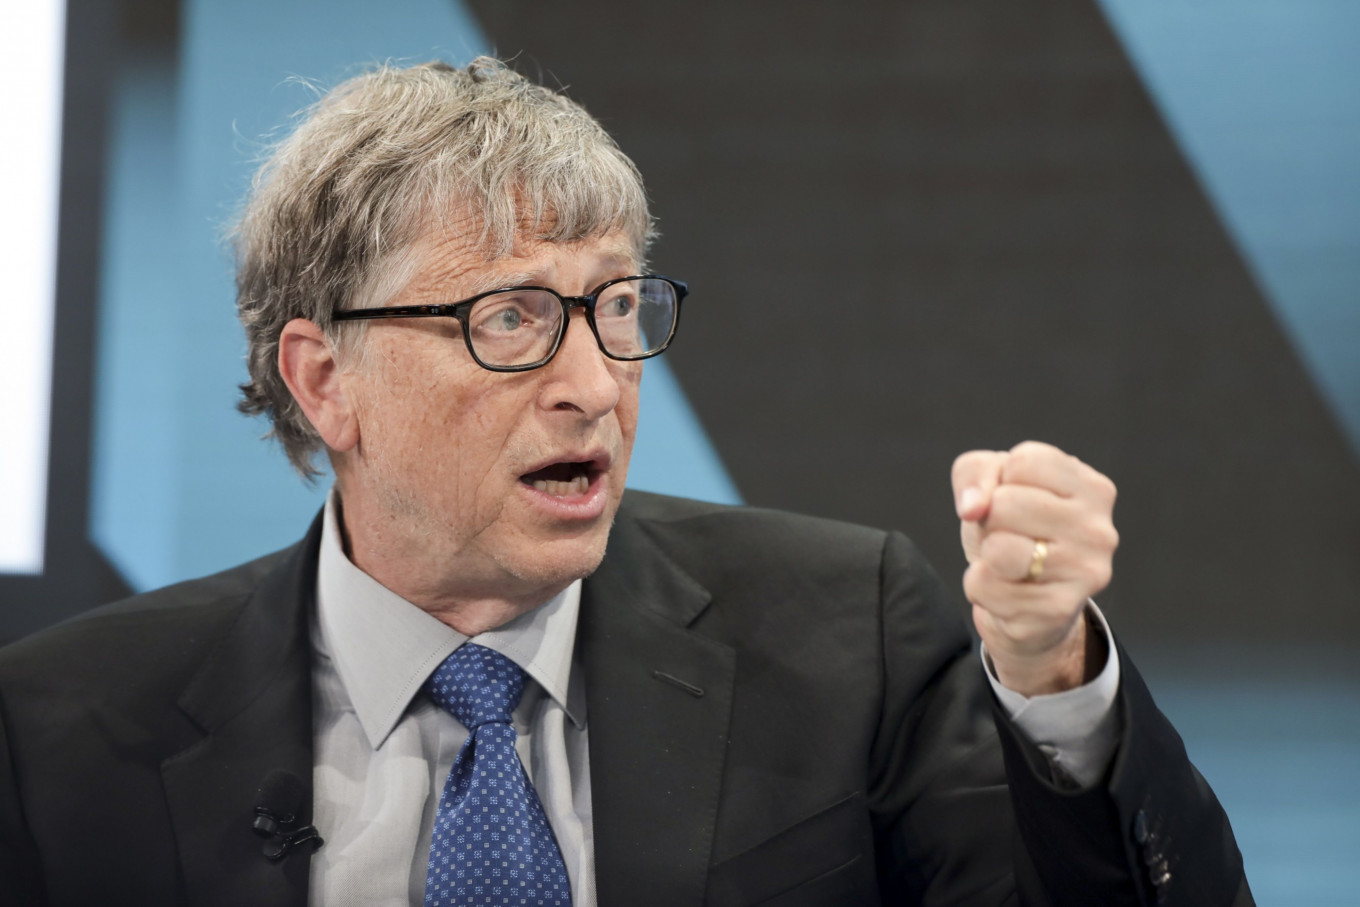 Bill Gates's coronavirus vaccine could be ready in 12 months